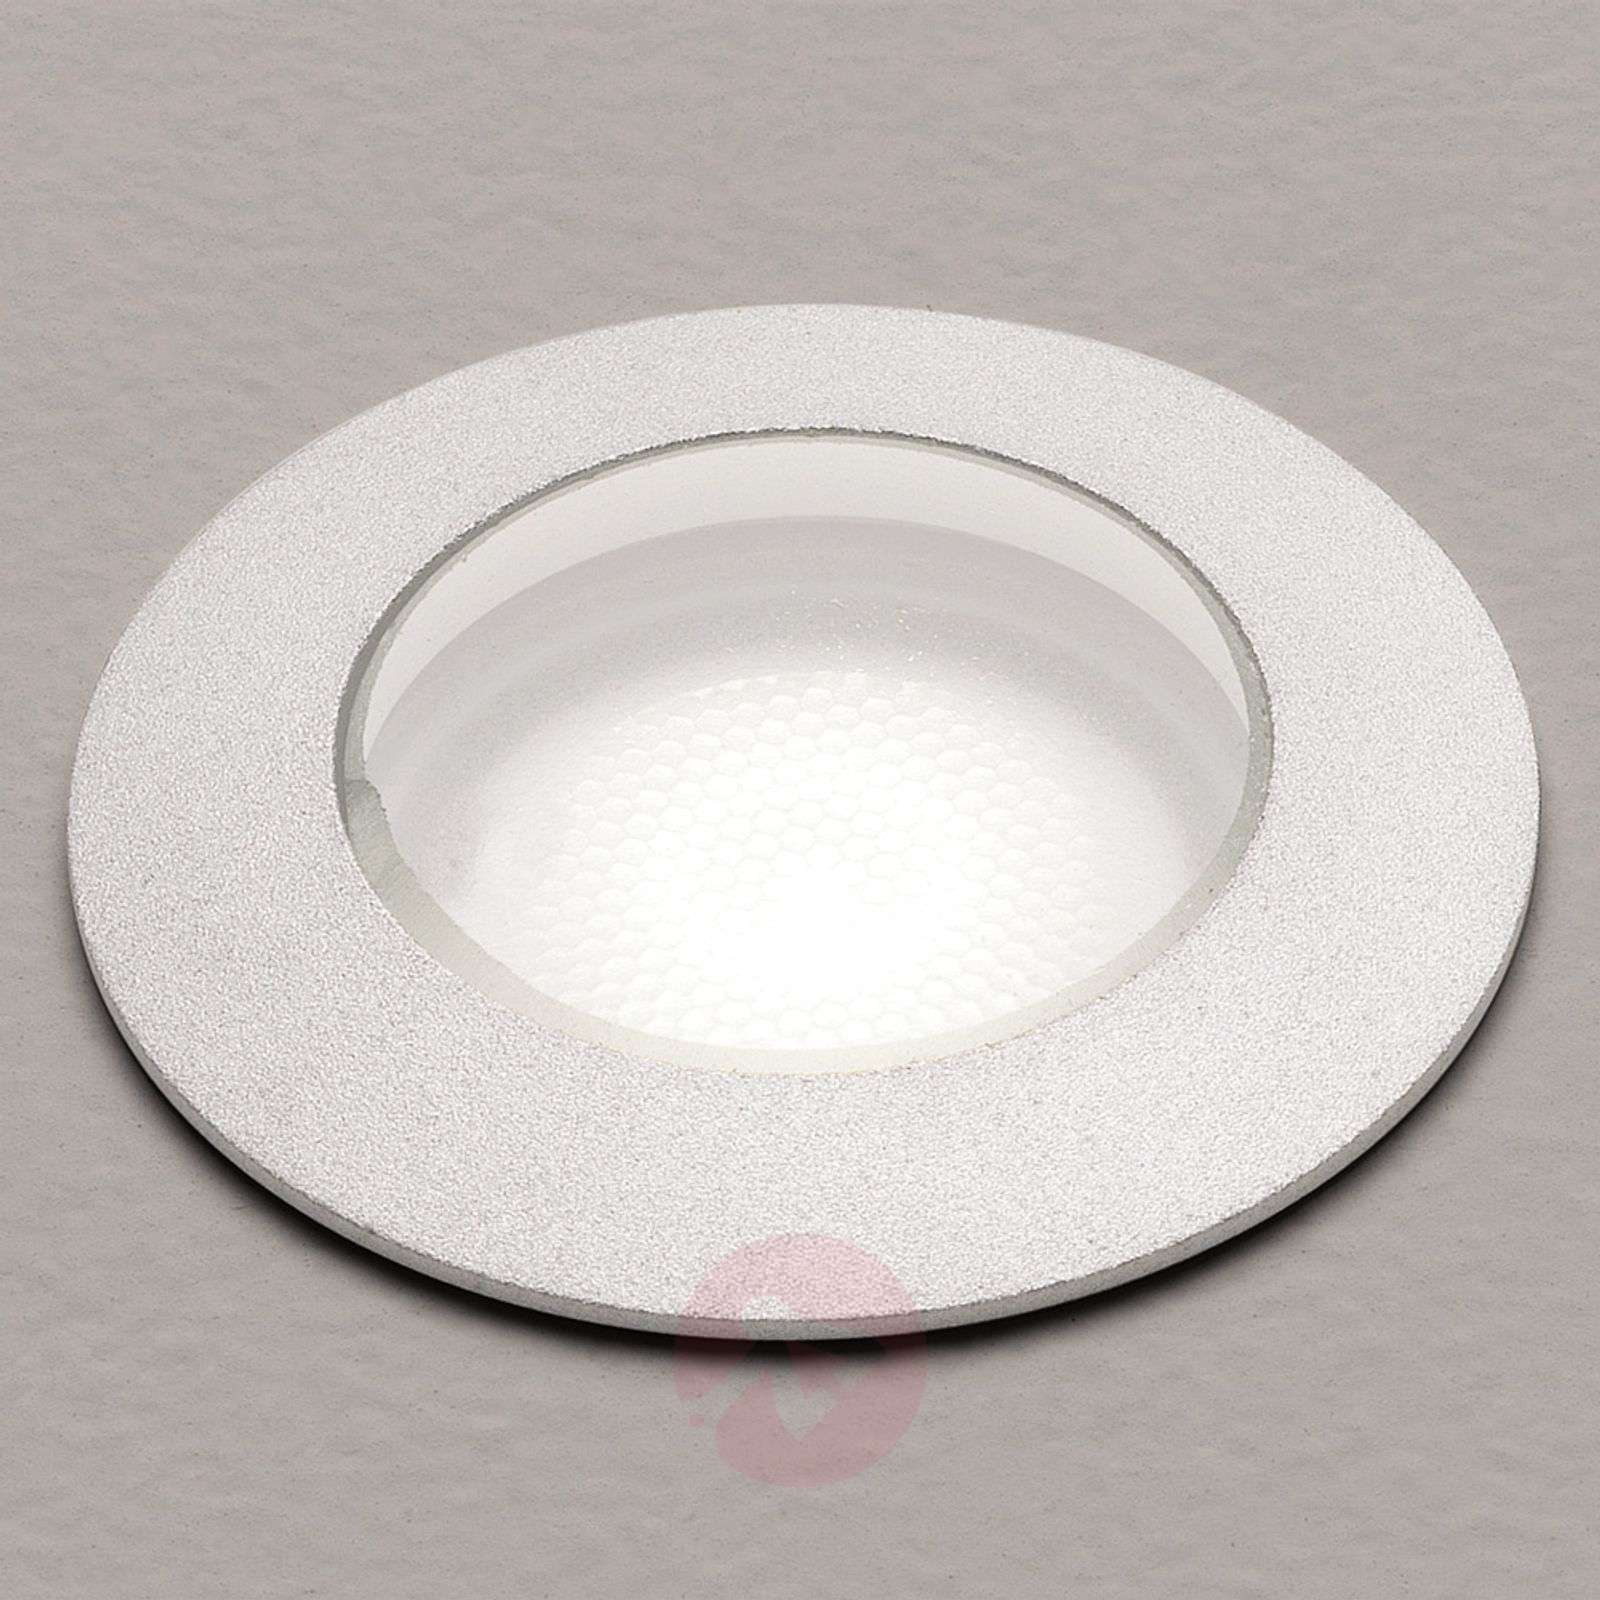 Terra 42 LED Built-In Bathroom Spotlight with IP67-1020459-03